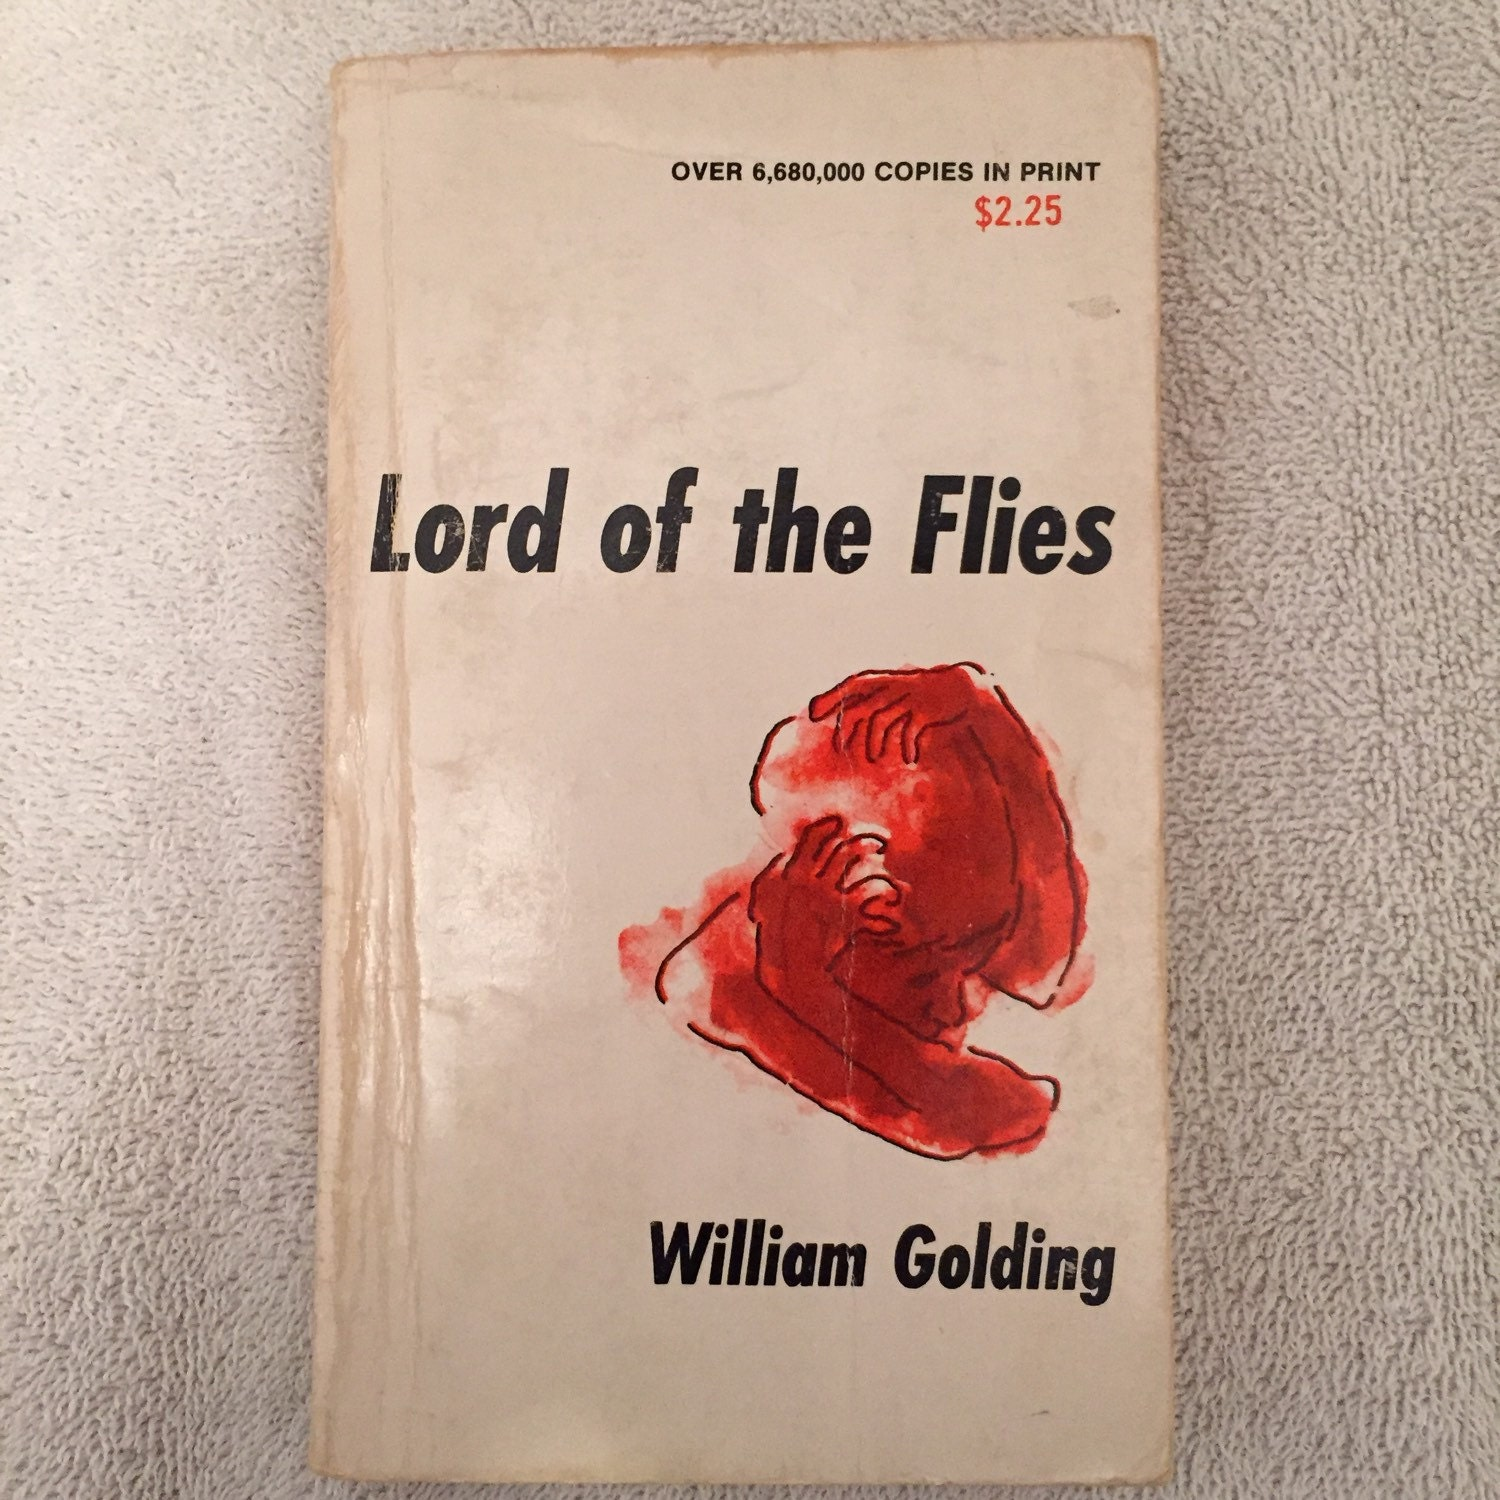 READ: PDF ARTICLES ON FEMINISM IN LORD OF FLIES